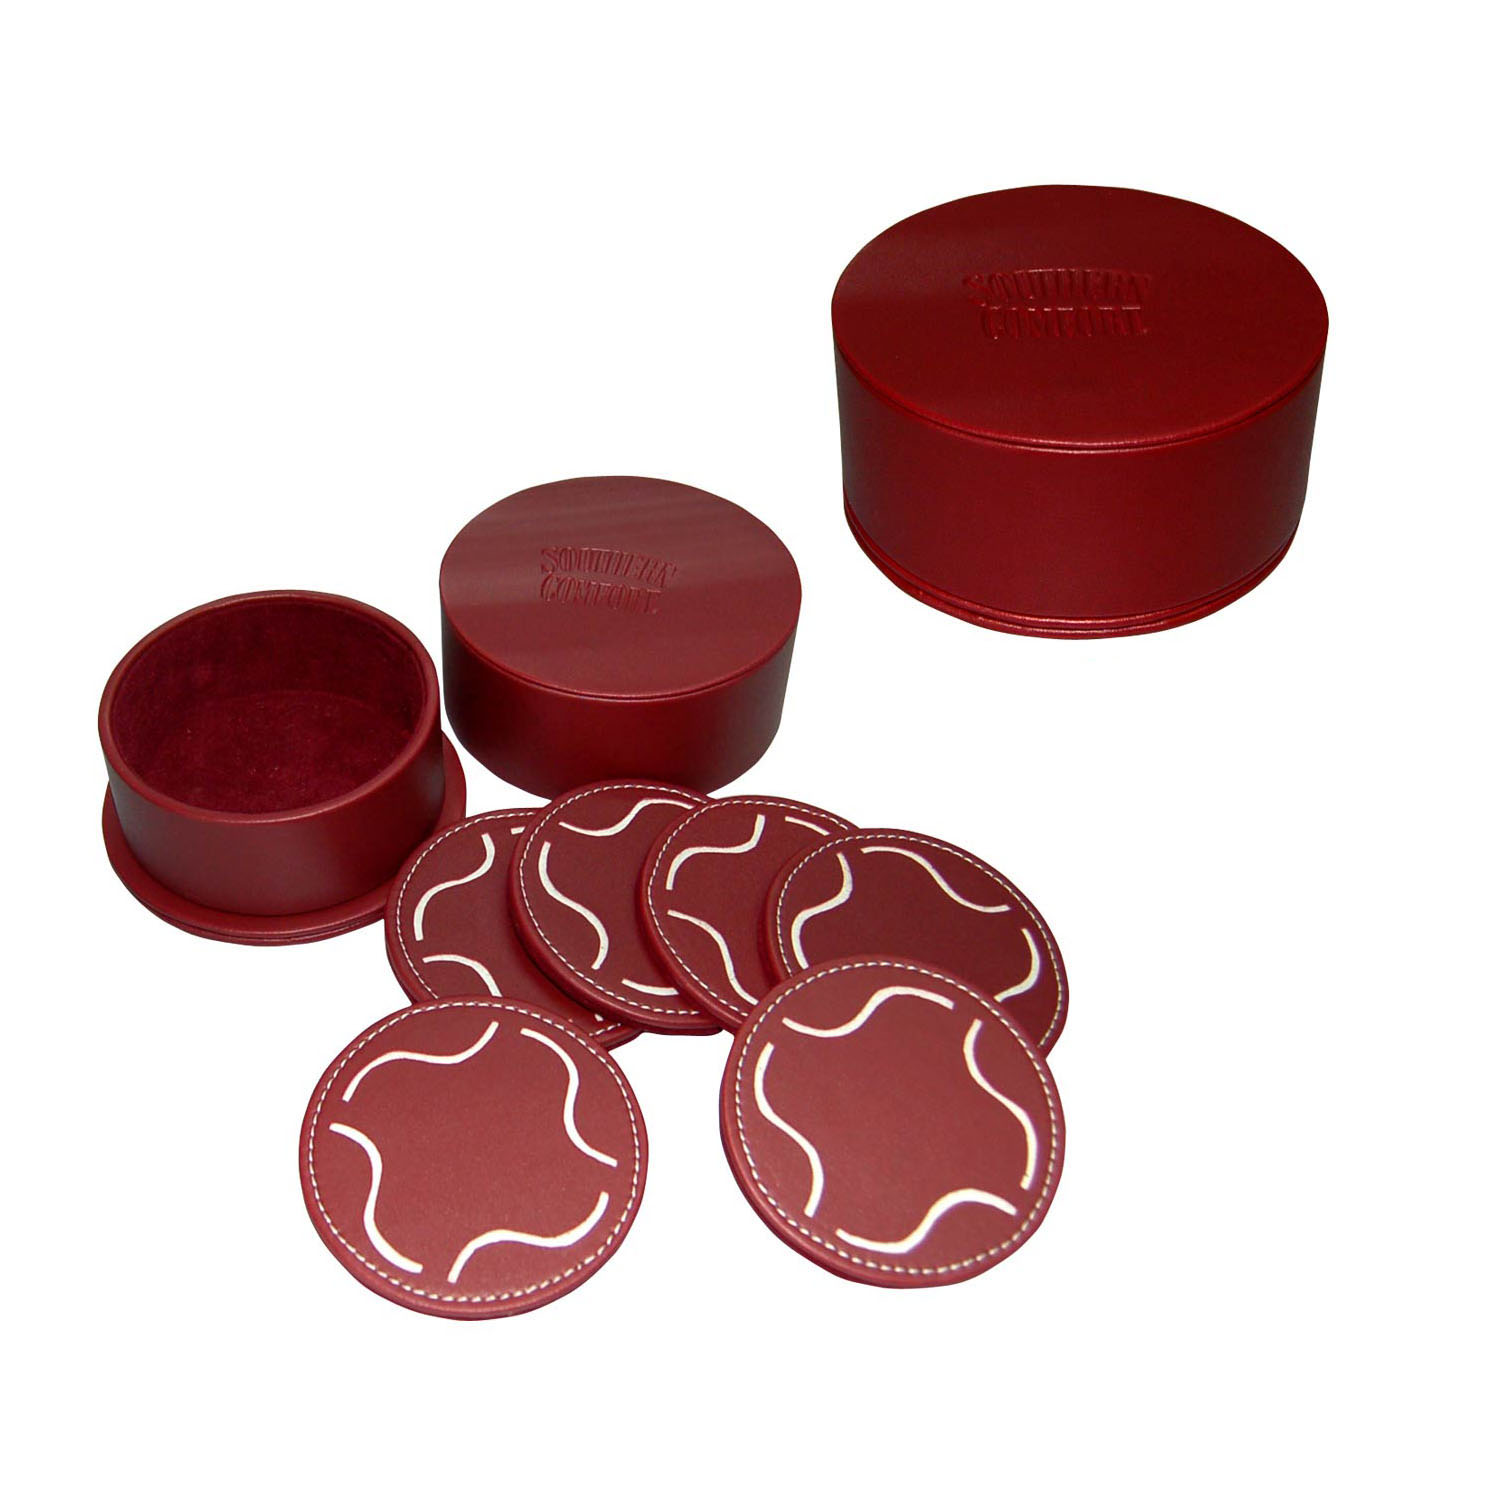 Special lichee Pattern leather cup coaster set for sale